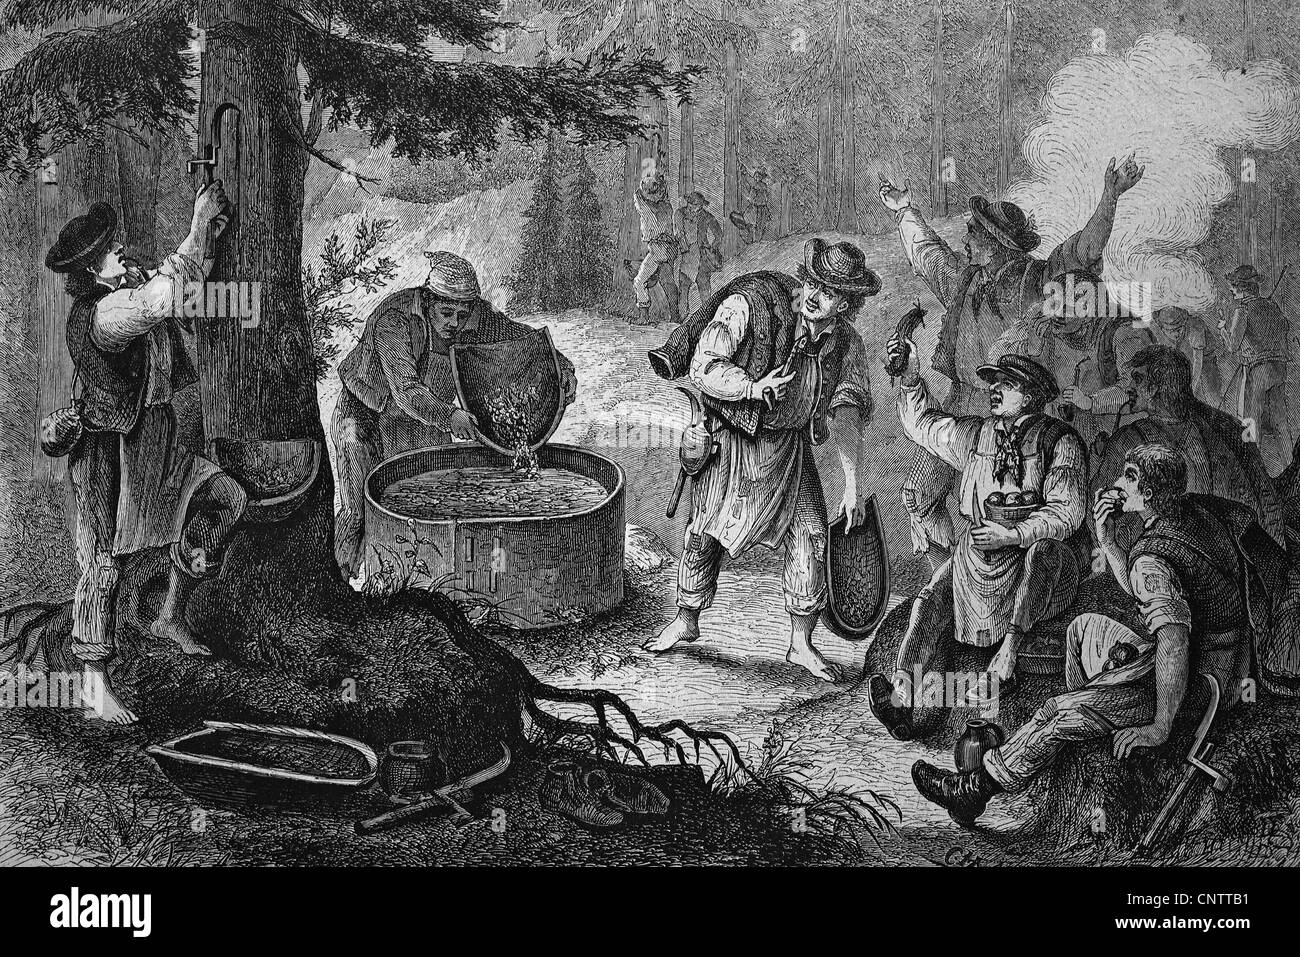 Pitchers boiling pitch from tree resin in Vogtland, historical engraving, circa 1870 - Stock Image